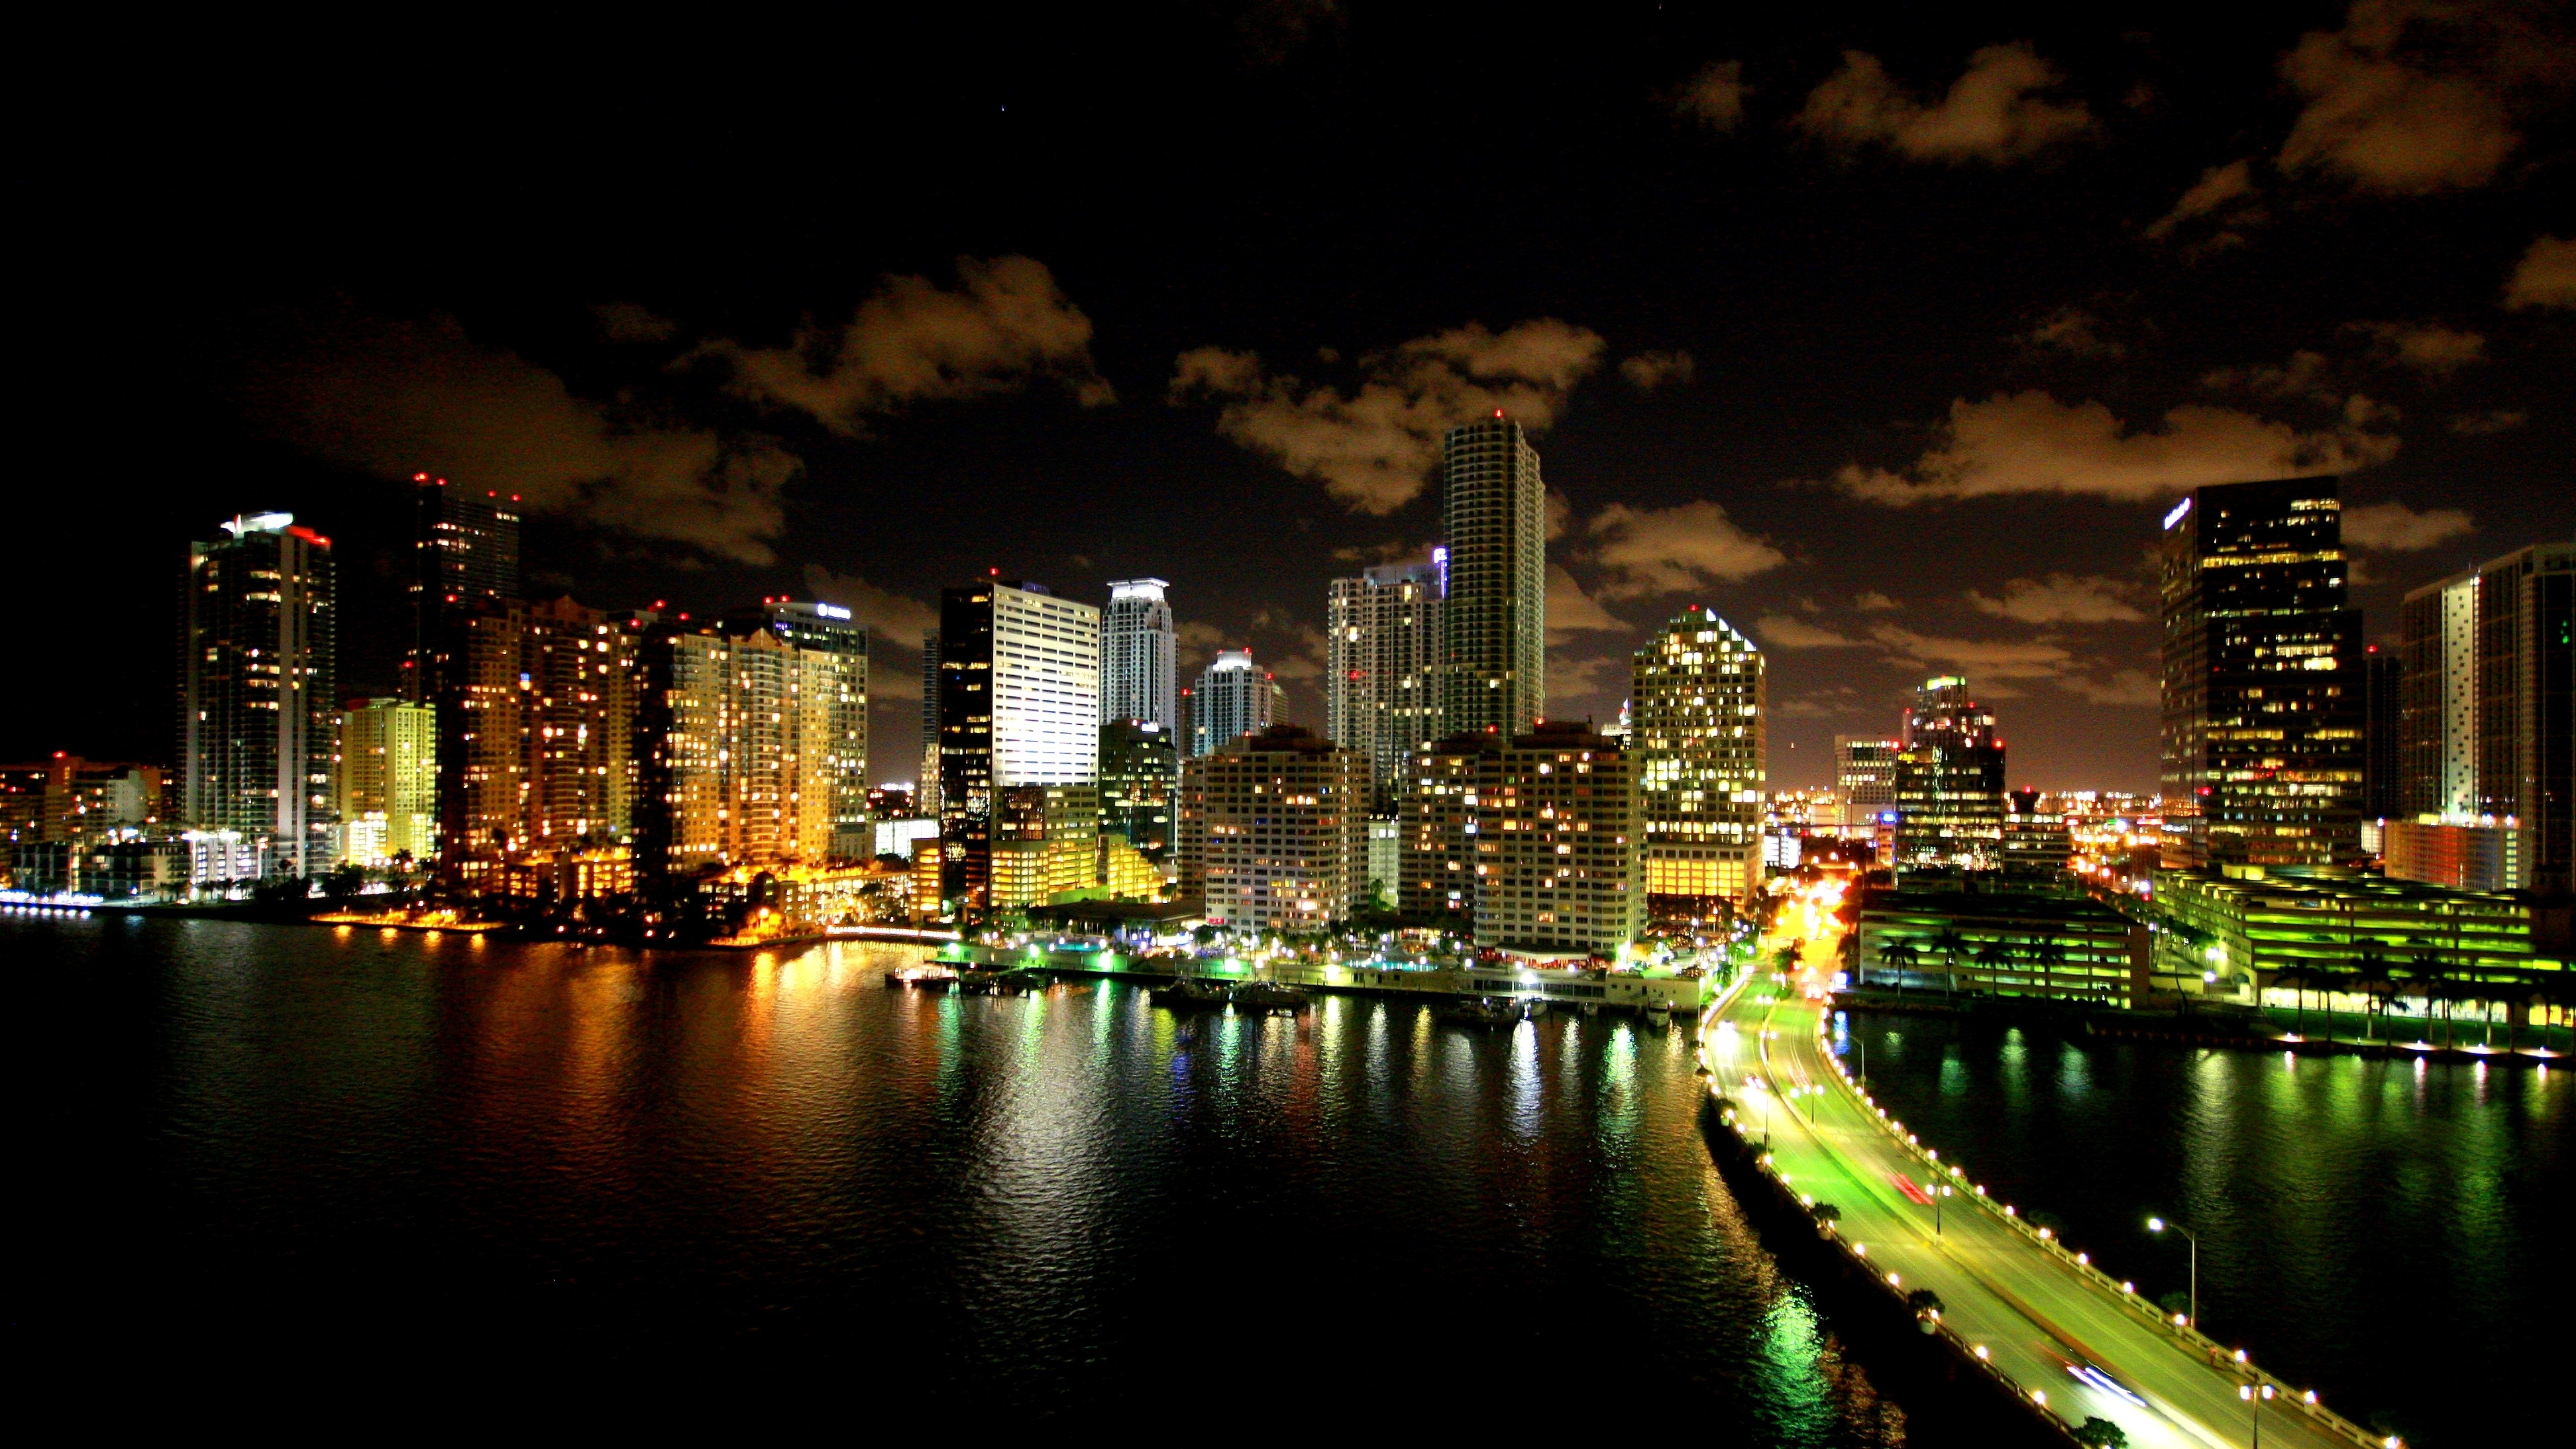 Beautiful Quotes And Inspirational Wallpapers Hd Miami Backgrounds Hd Pixelstalk Net